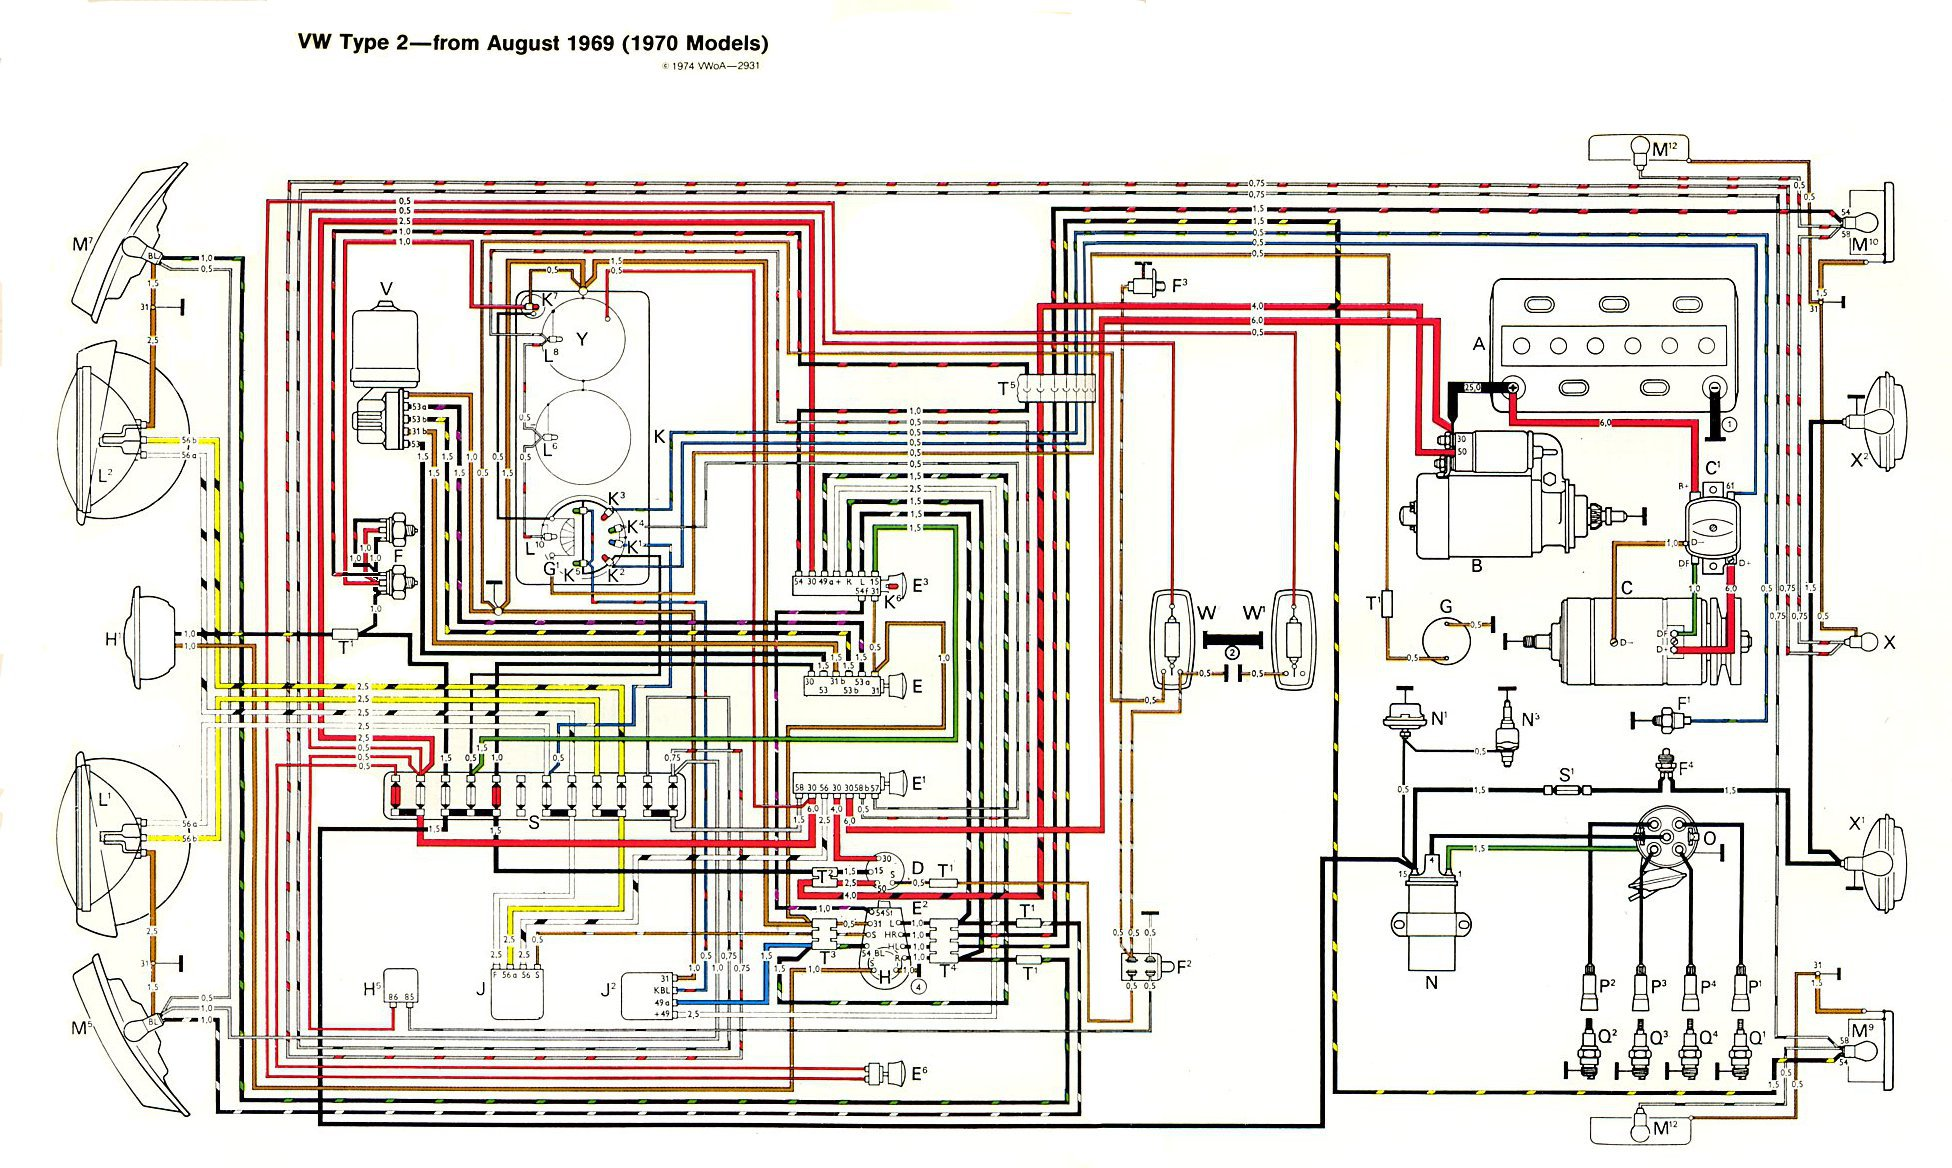 baybus_70 thesamba com type 2 wiring diagrams 1970 vw bug wiring diagram at soozxer.org